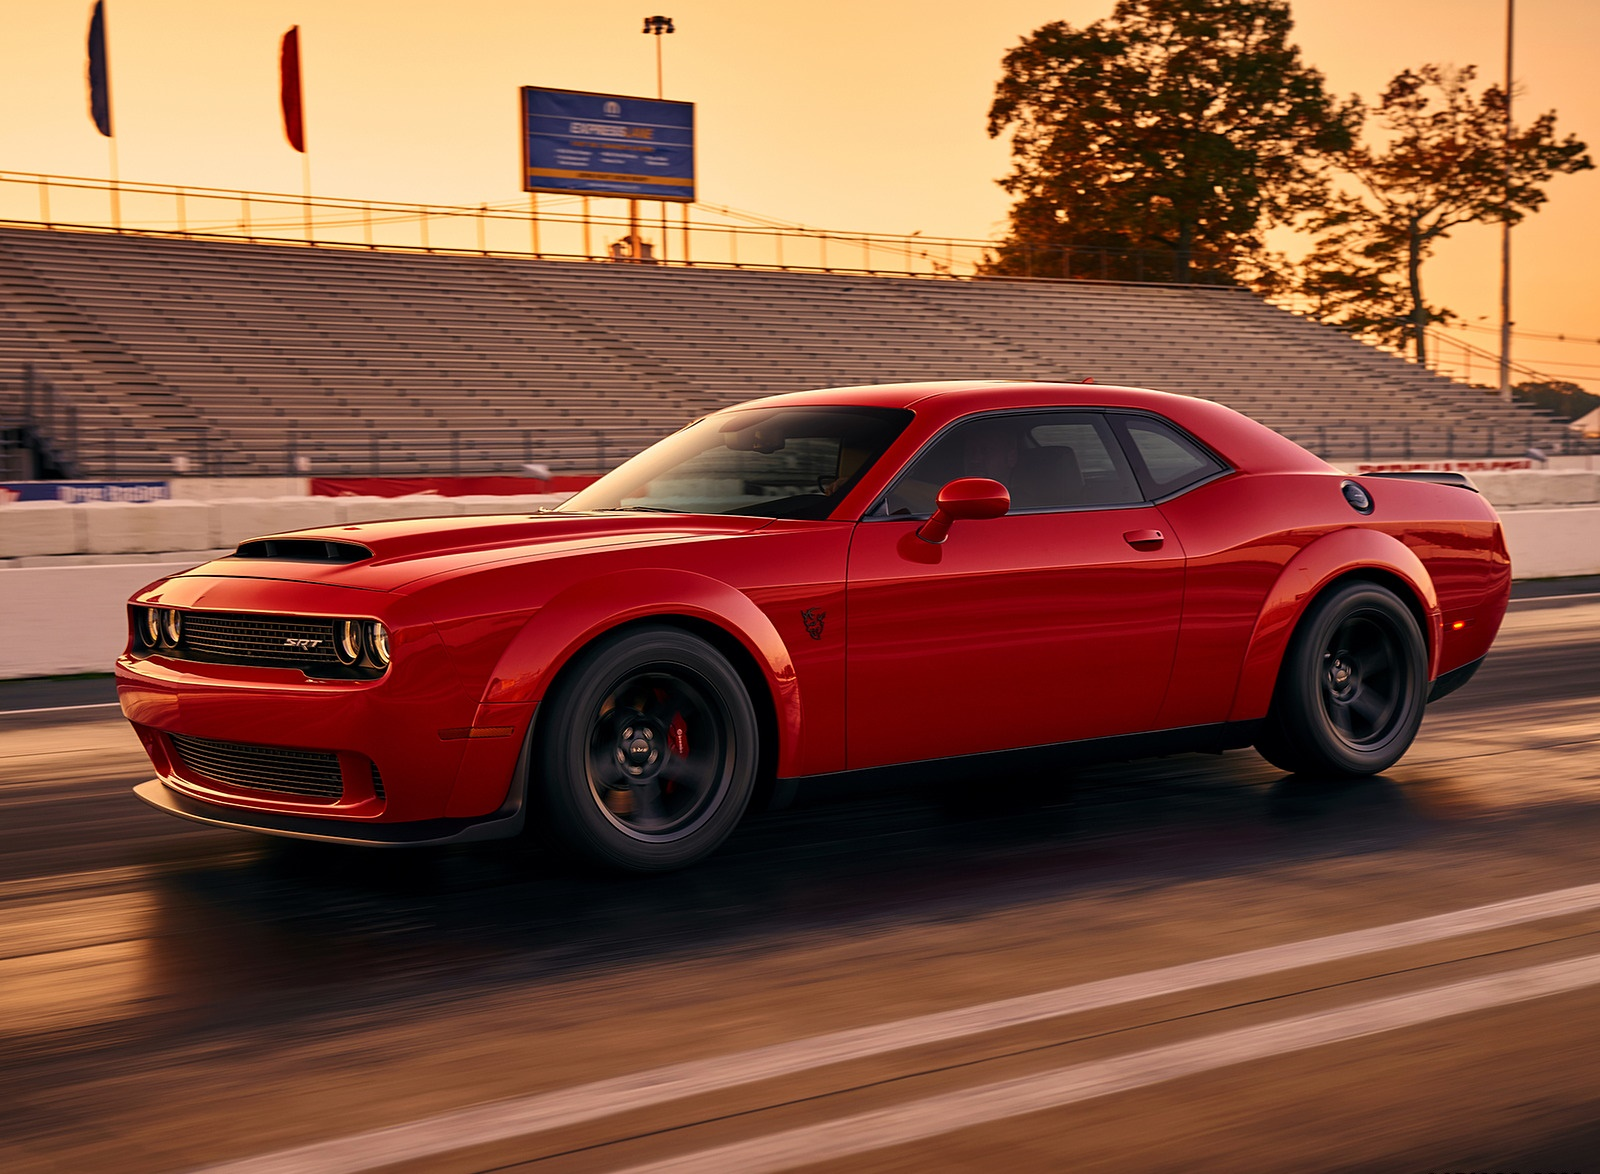 Challenger Hd Wallpaper 2018 Dodge Challenger Srt Demon Side Wallpaper 30 Hd Wallpapers